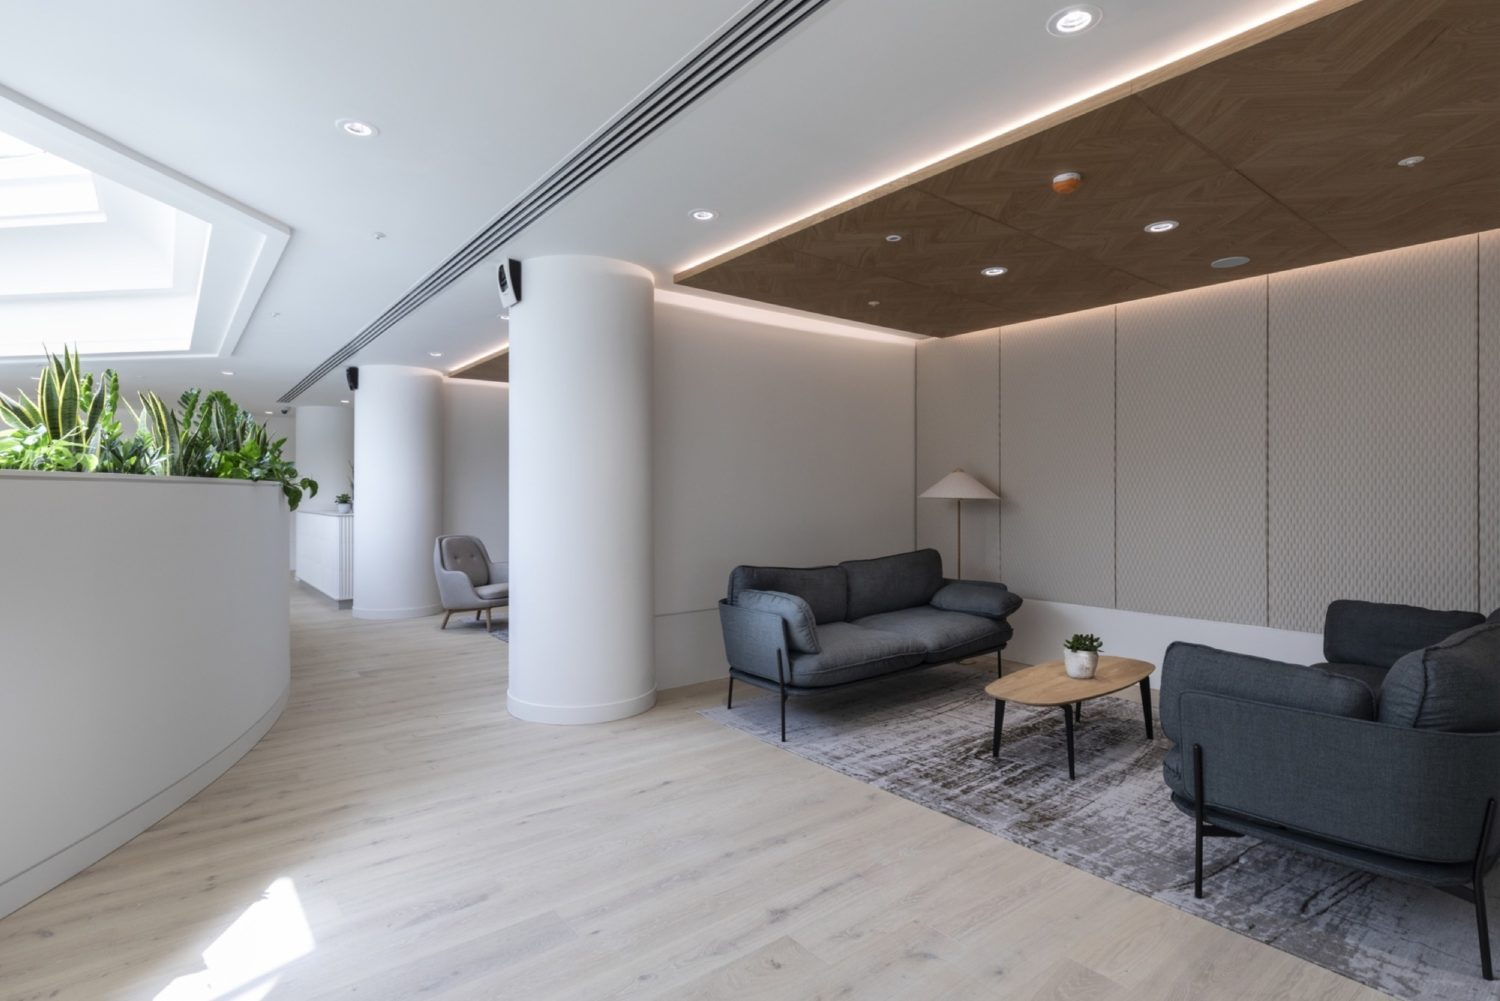 BCLP London fit out of breakout space